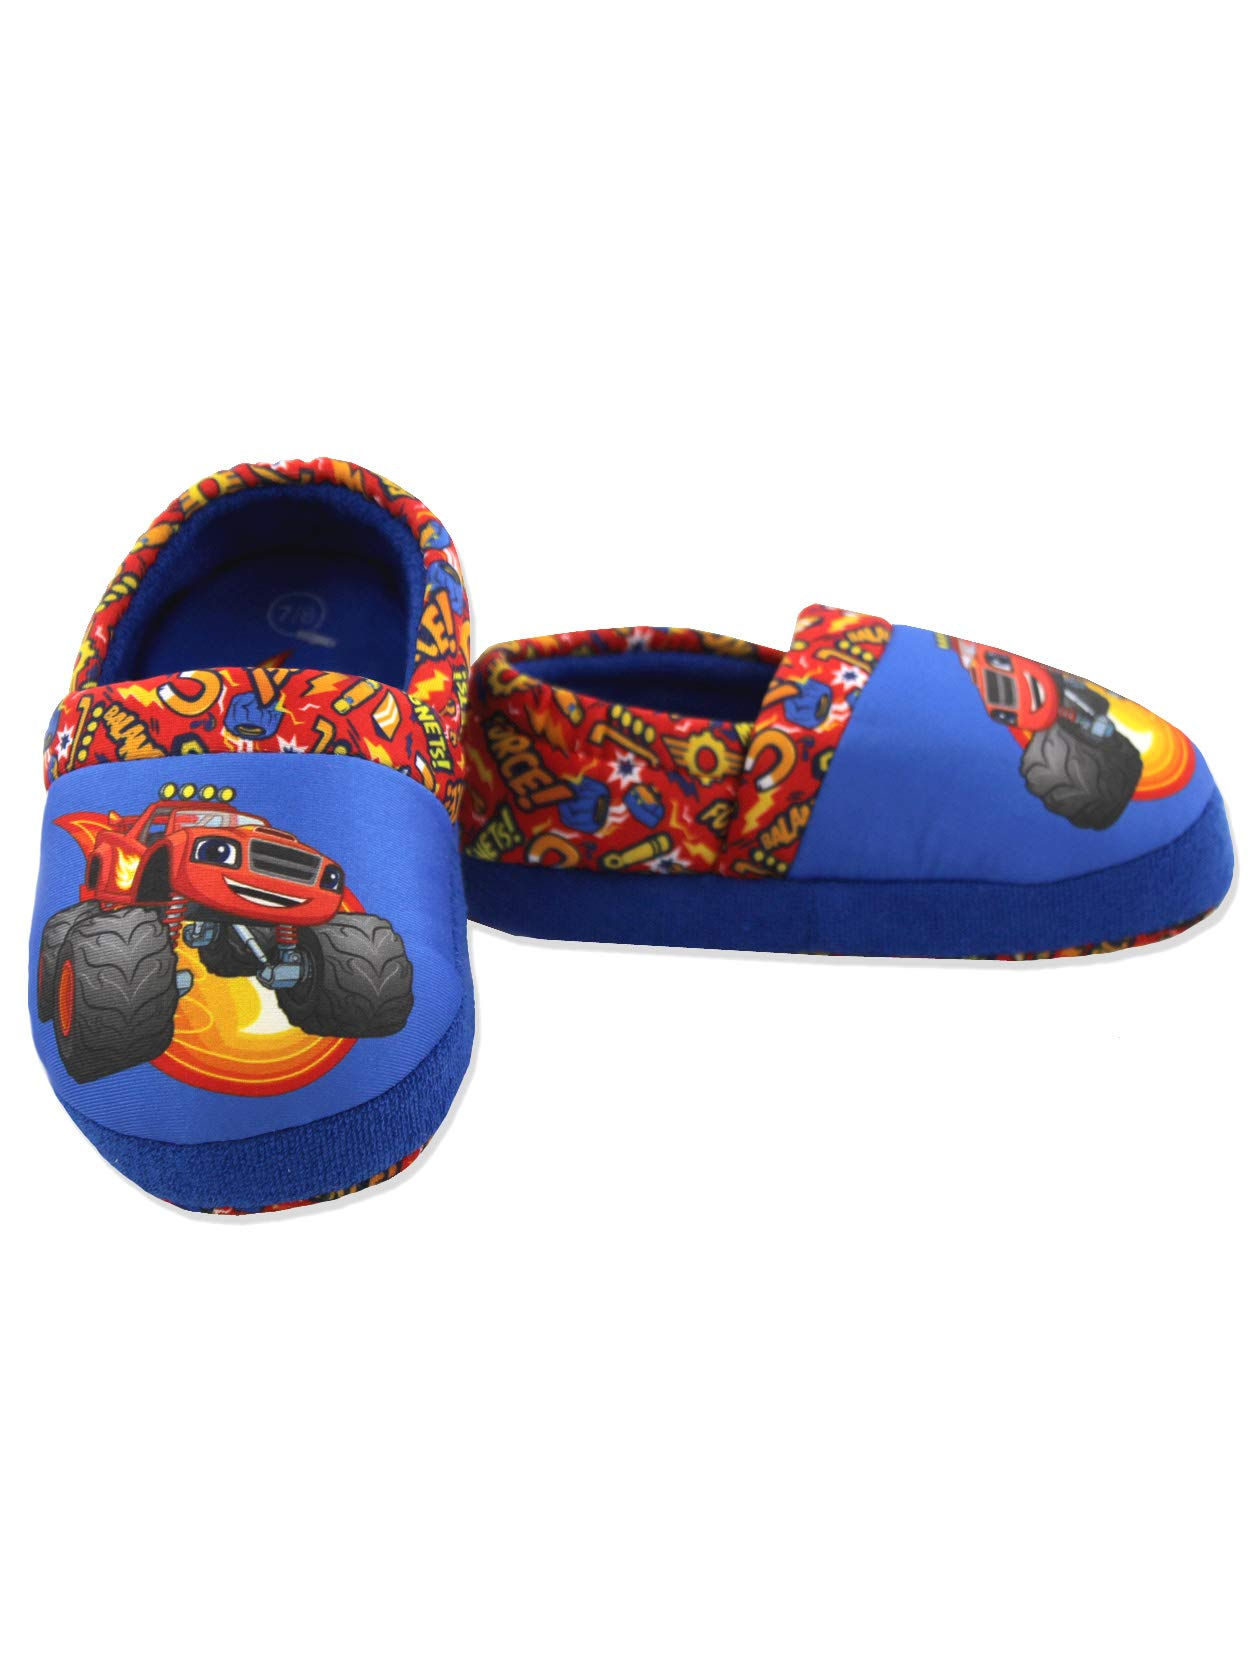 Blaze and The Monster Machines Boys Toddler Plush Aline Slippers (7-8 M US Toddler, Red/Blue)